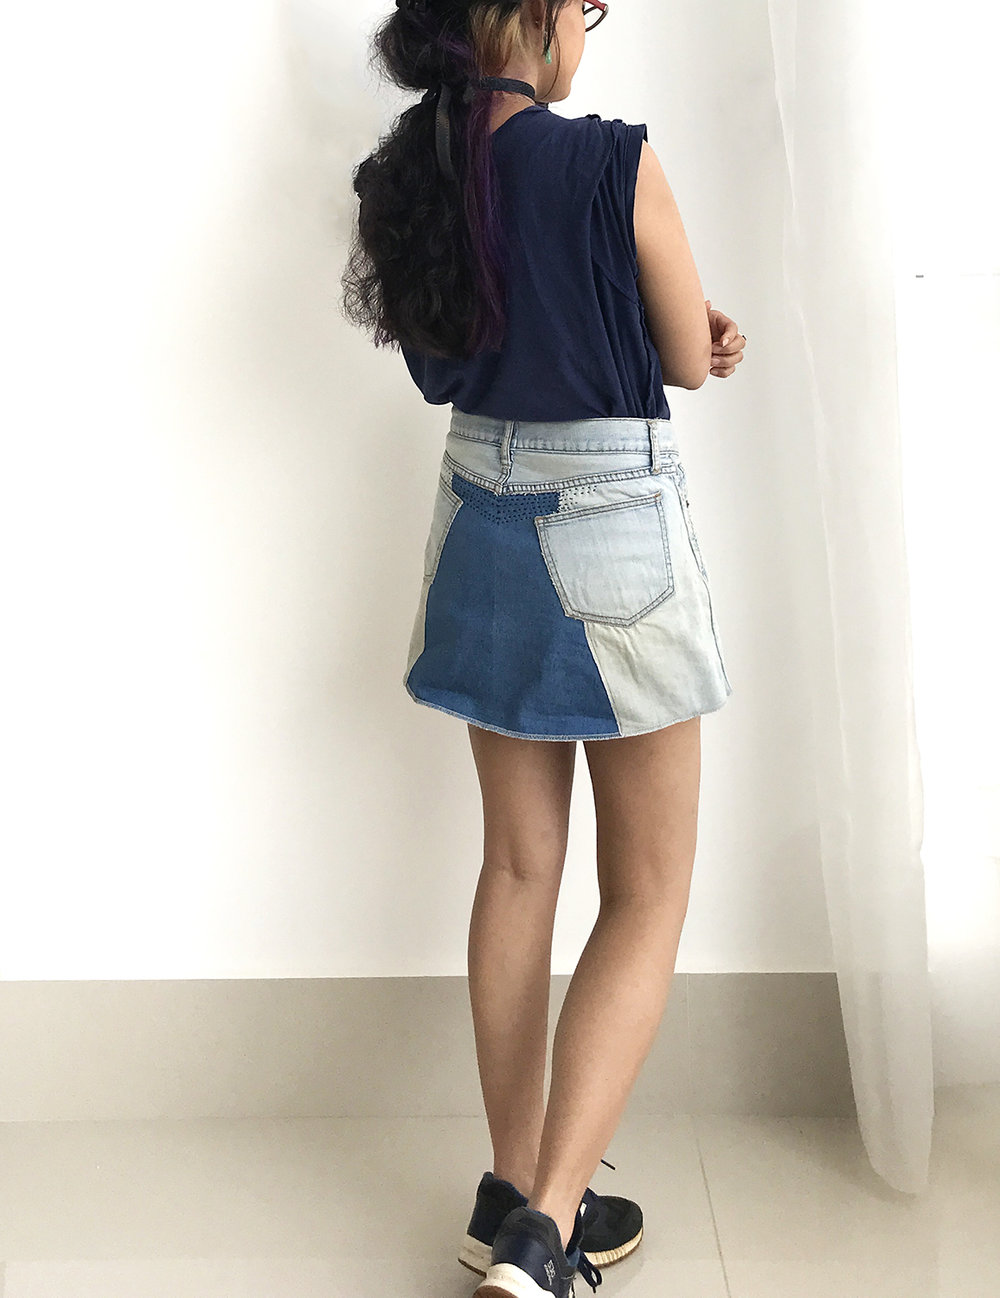 FashionTechsupport-Jean-shorts-after-lookbook-back-2.jpg